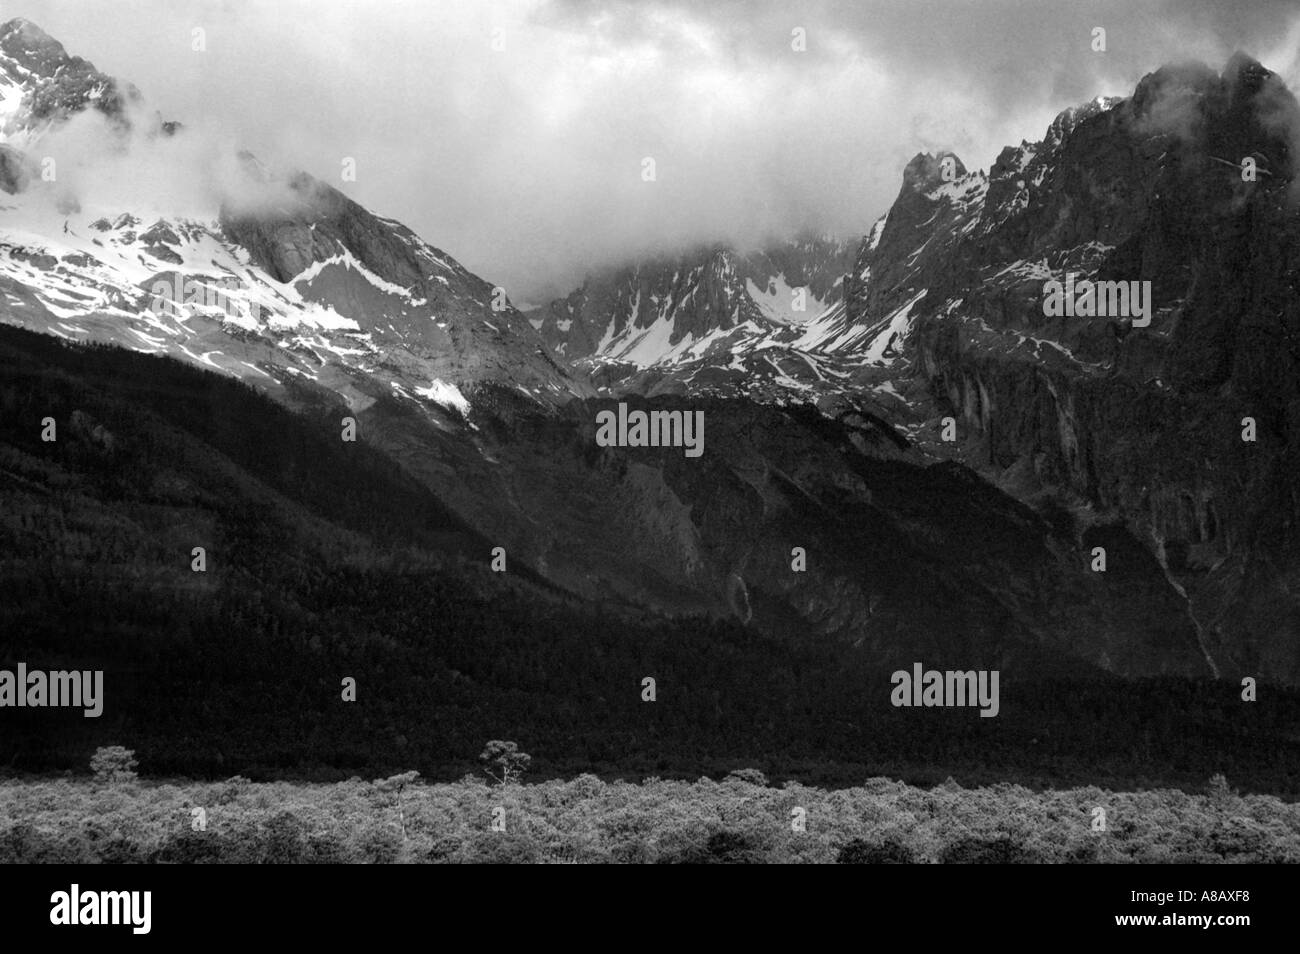 Yulong Snow Mountain, snow-capped mountains in Lijiang, China - Stock Image